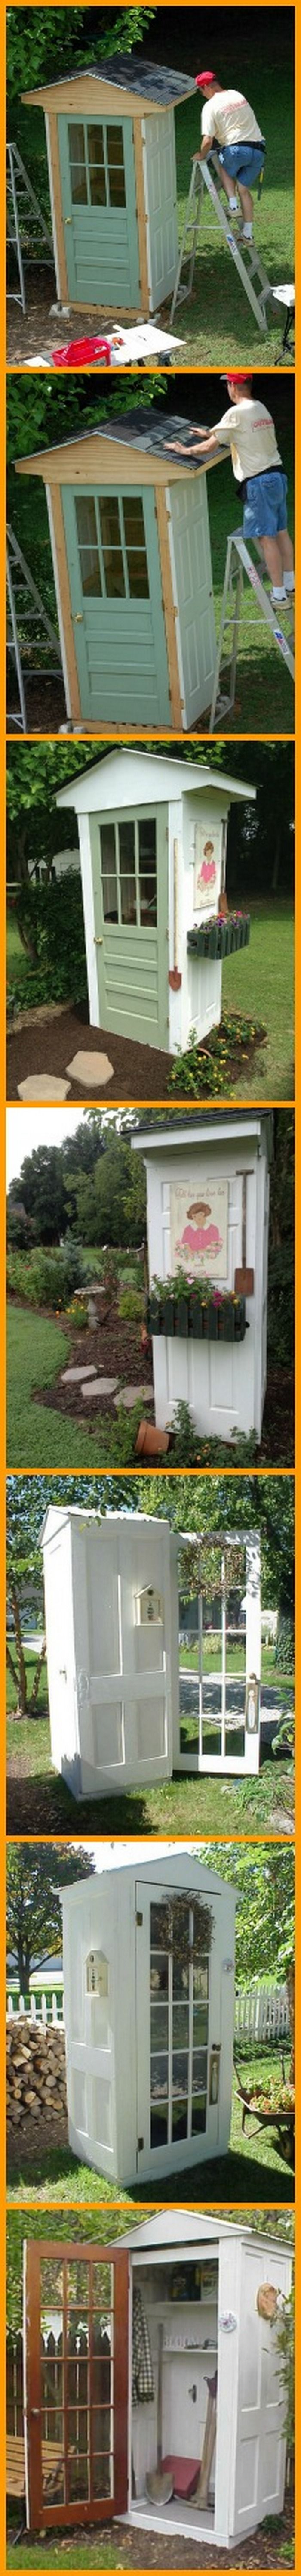 made from old doors this shed will look cute in any backyard do